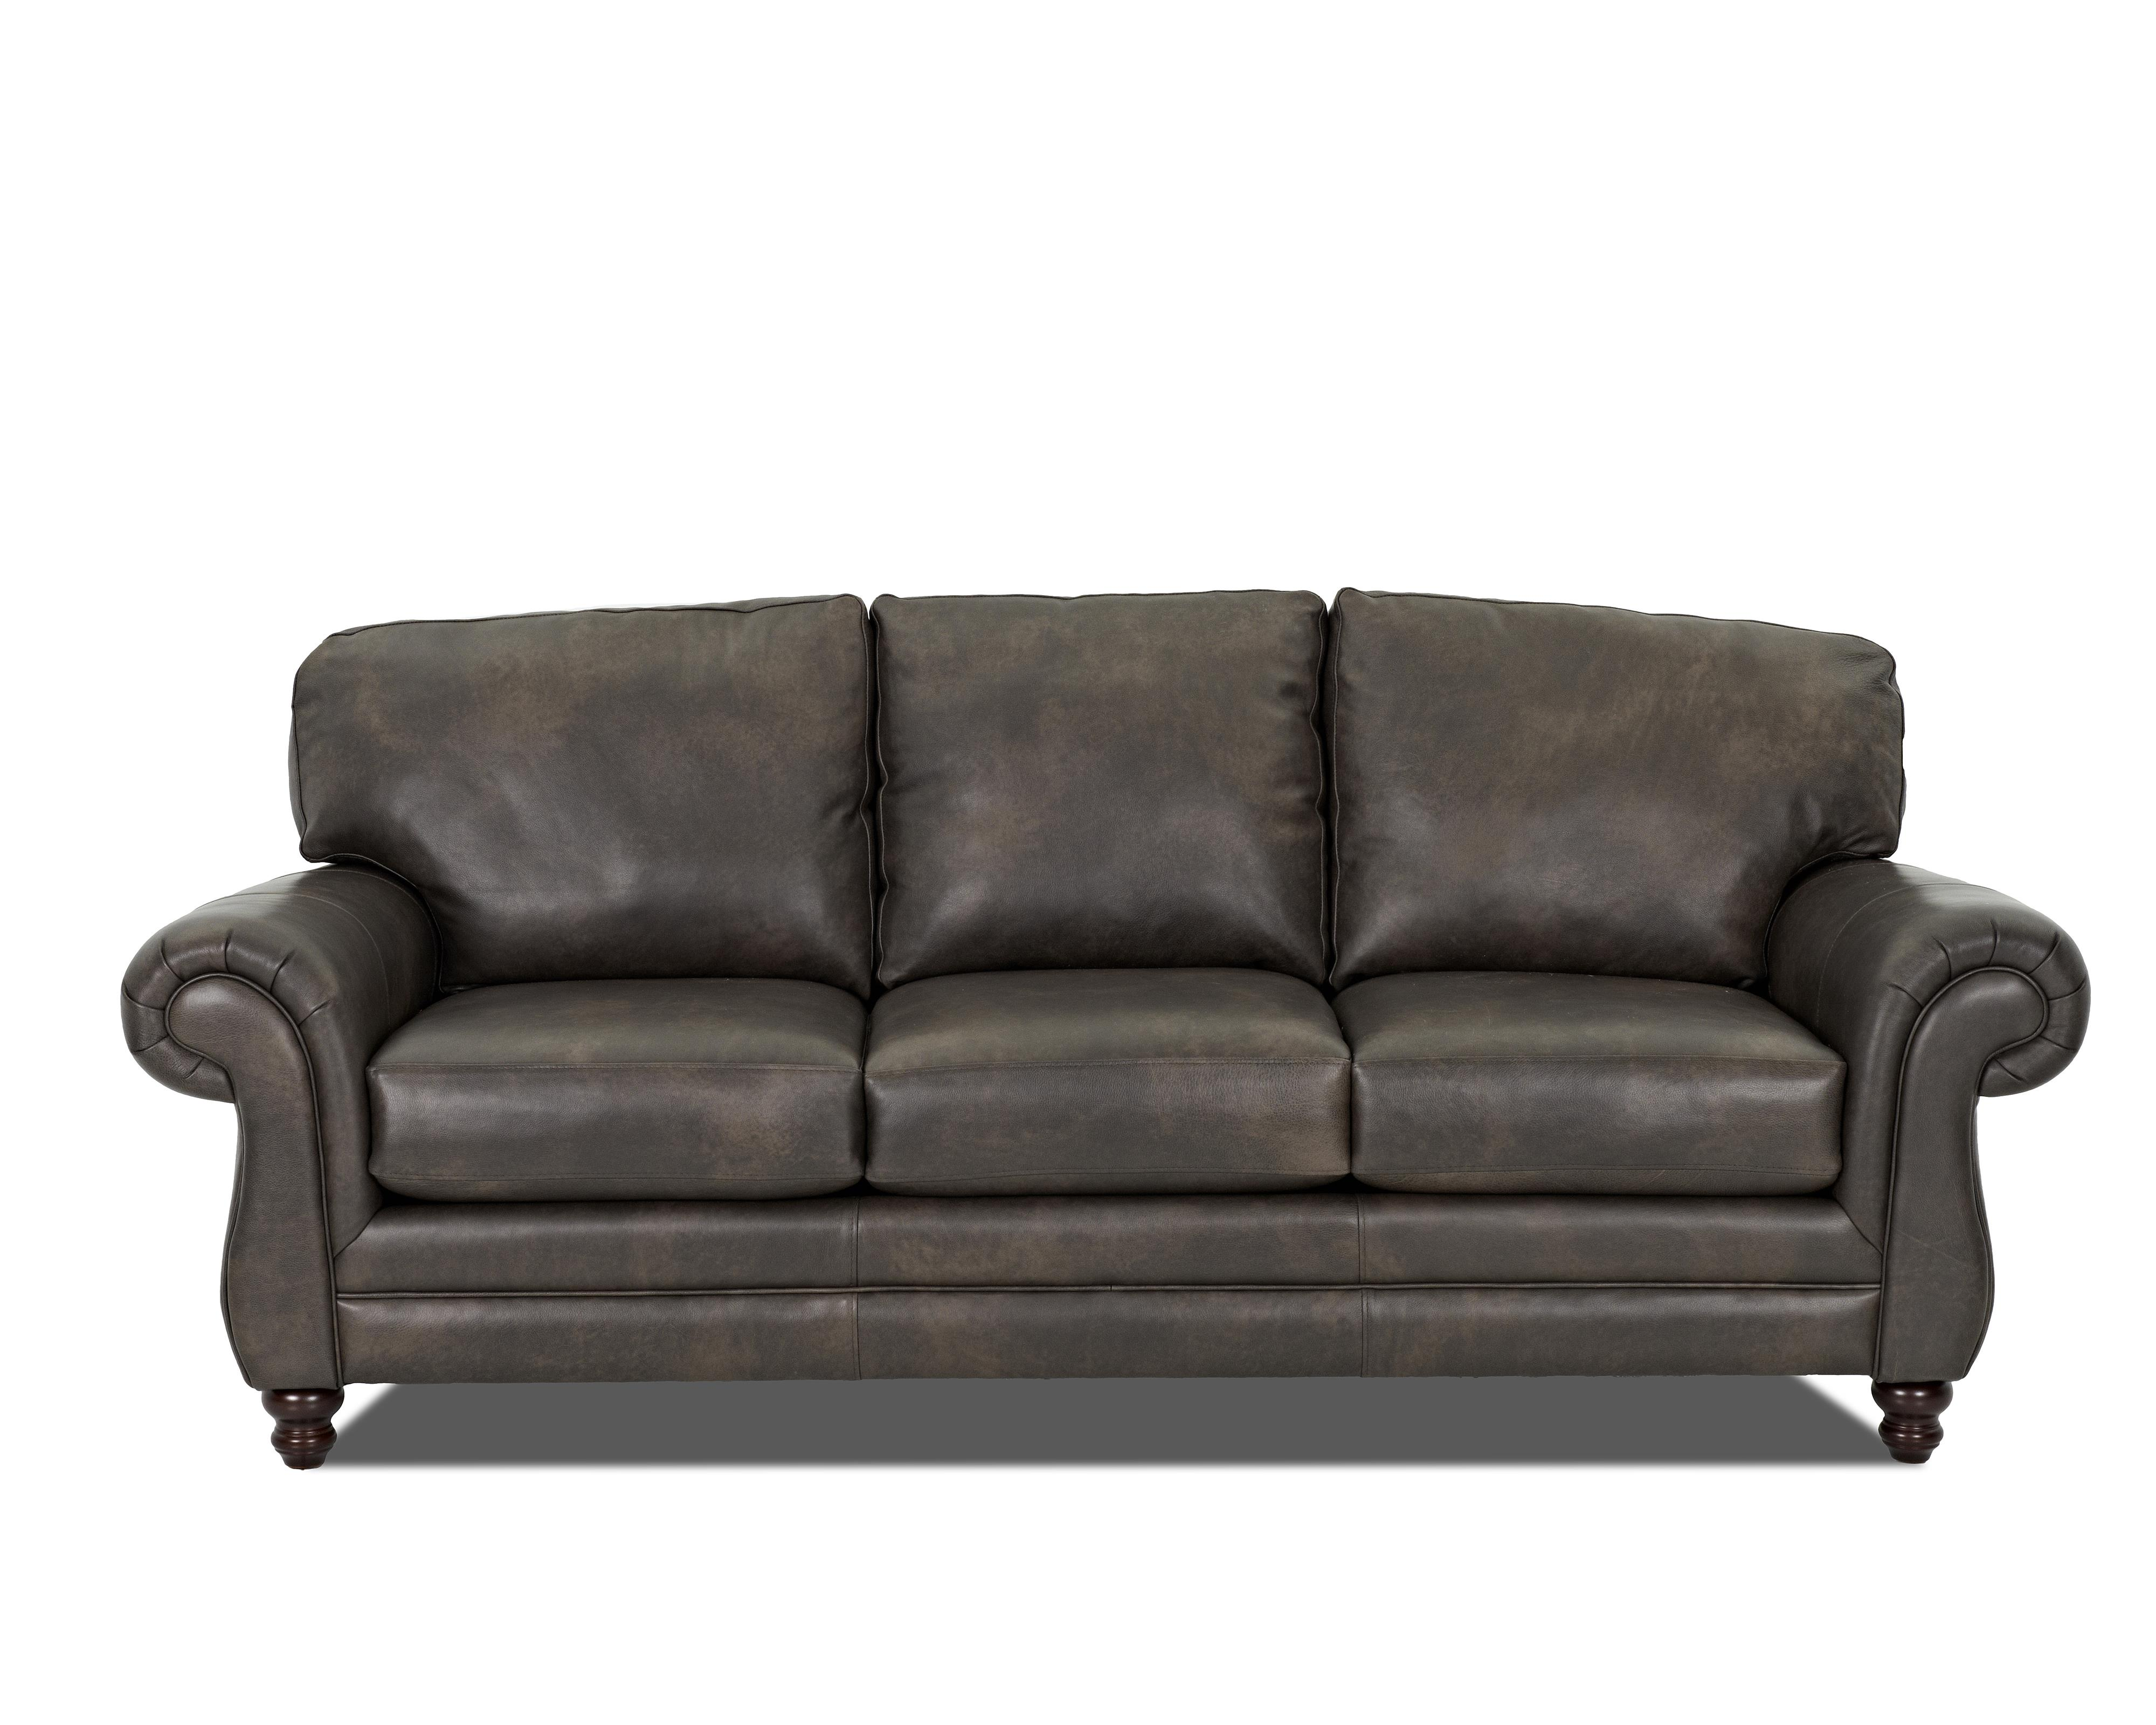 Klaussner leather sofa klaussner montezuma casual style for Klaussner sofa